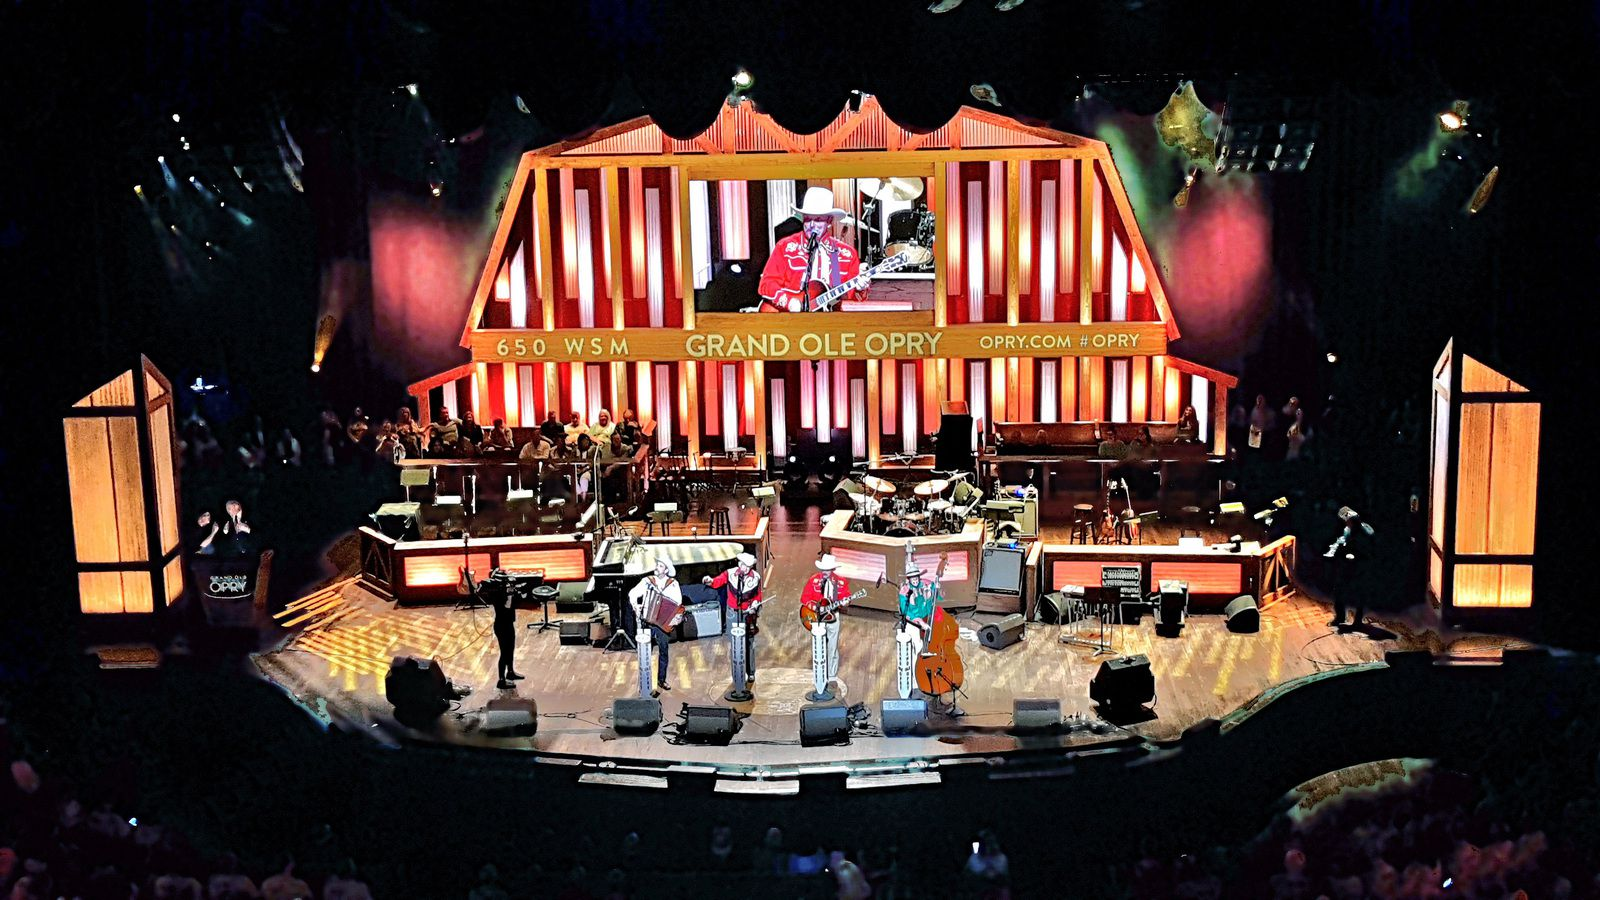 Nashville Grand Ole Opry The Riders in the Sky